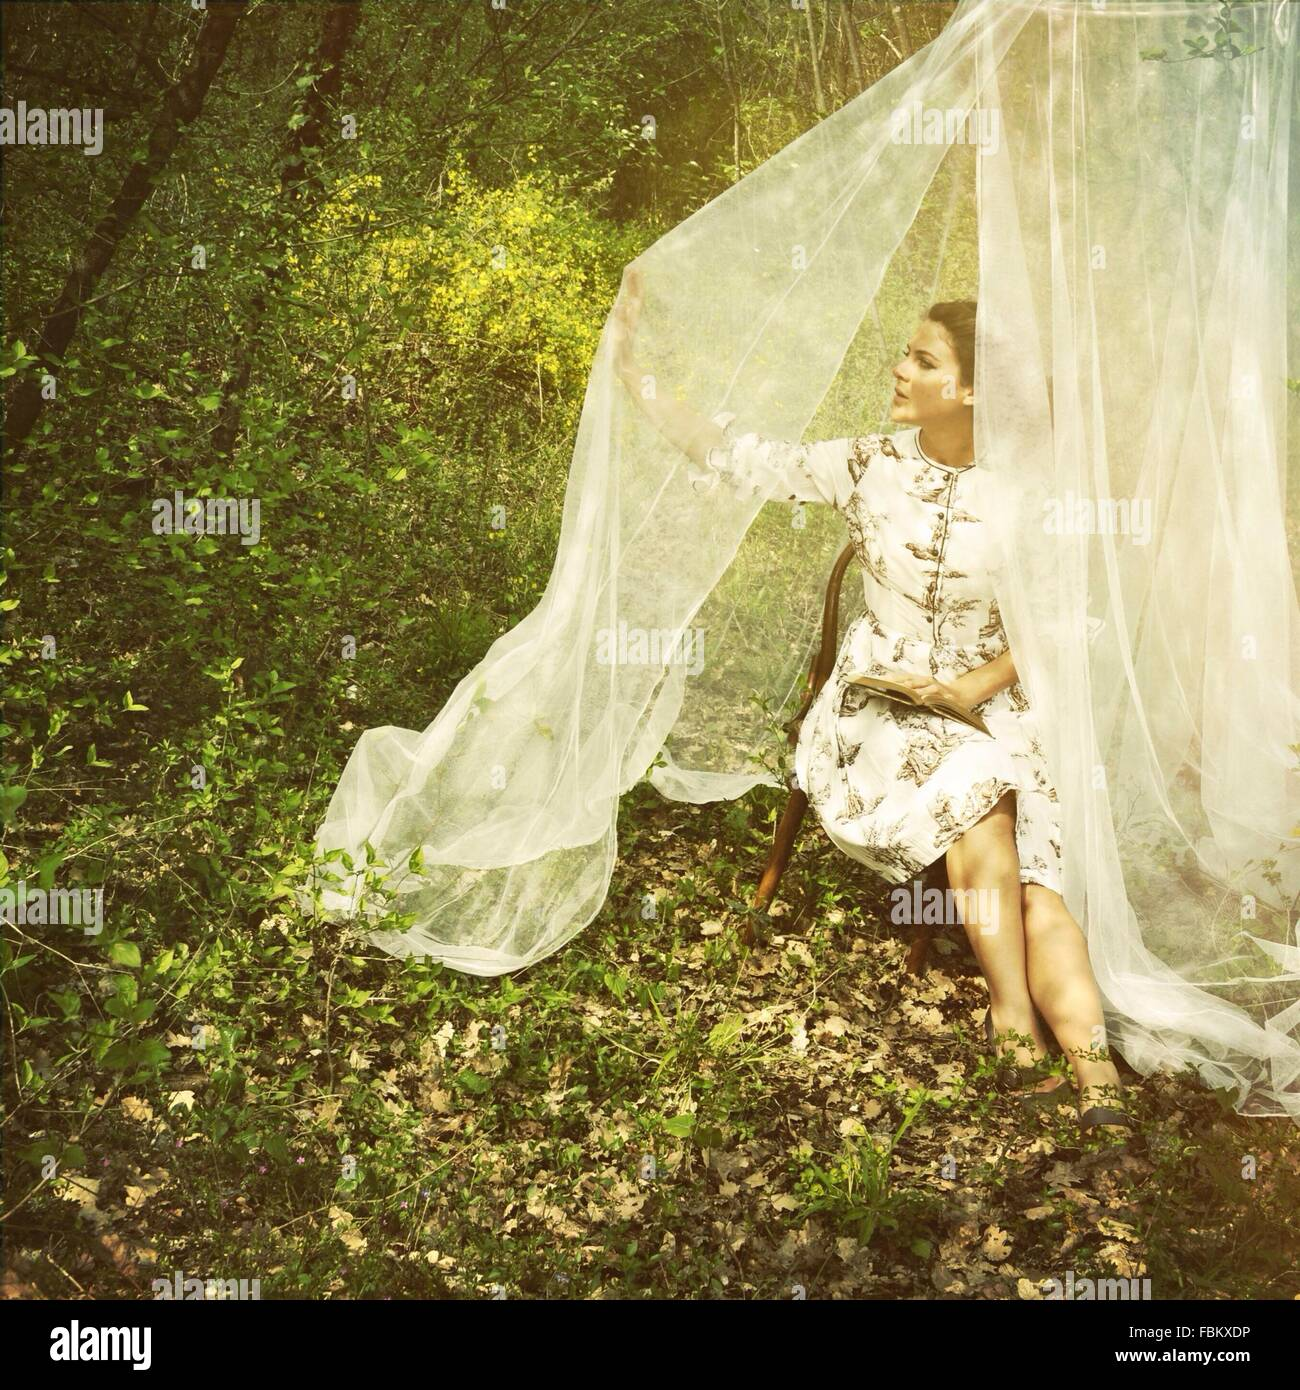 Woman With Book Touching Curtain While Sitting On Chair At Forest - Stock Image